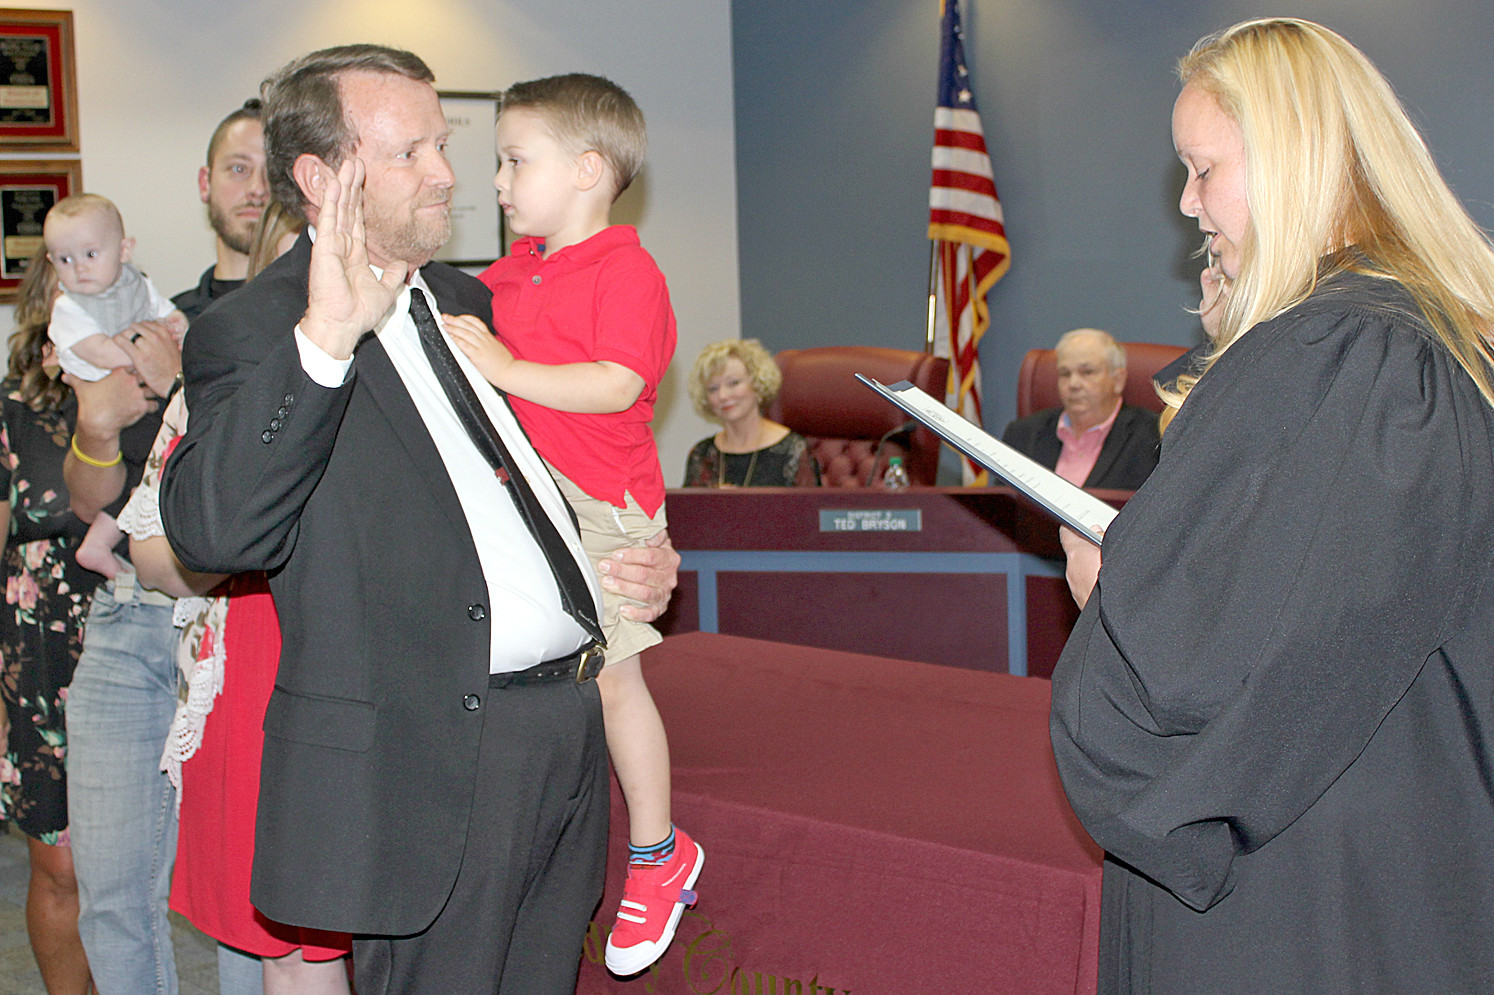 TROY WEATHERS, holding his grandson Jeremiah McDonald, is sworn in as the District 4 Bradley County Board of Education member by Magistrate Ashley Gaither.